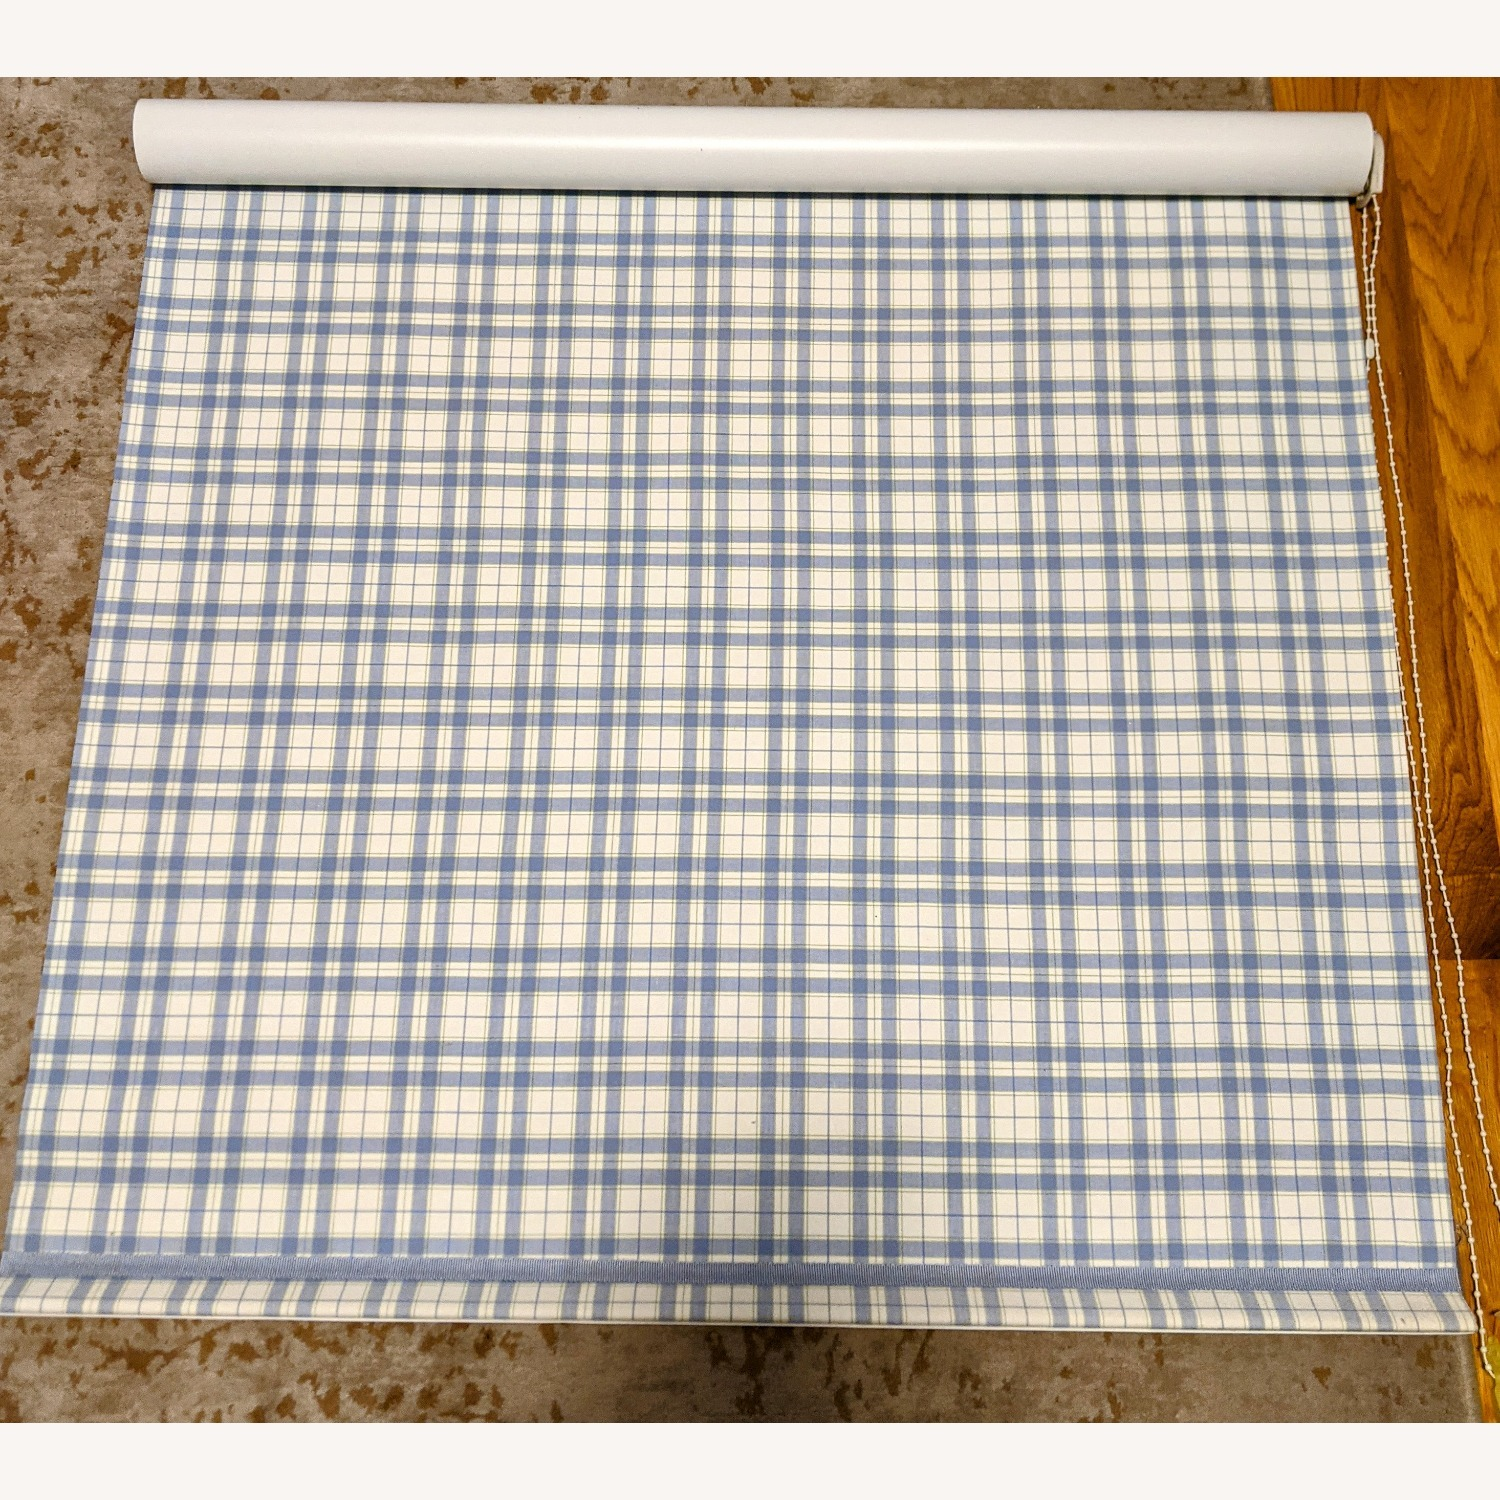 Fabric Roller Shades (3) - image-1